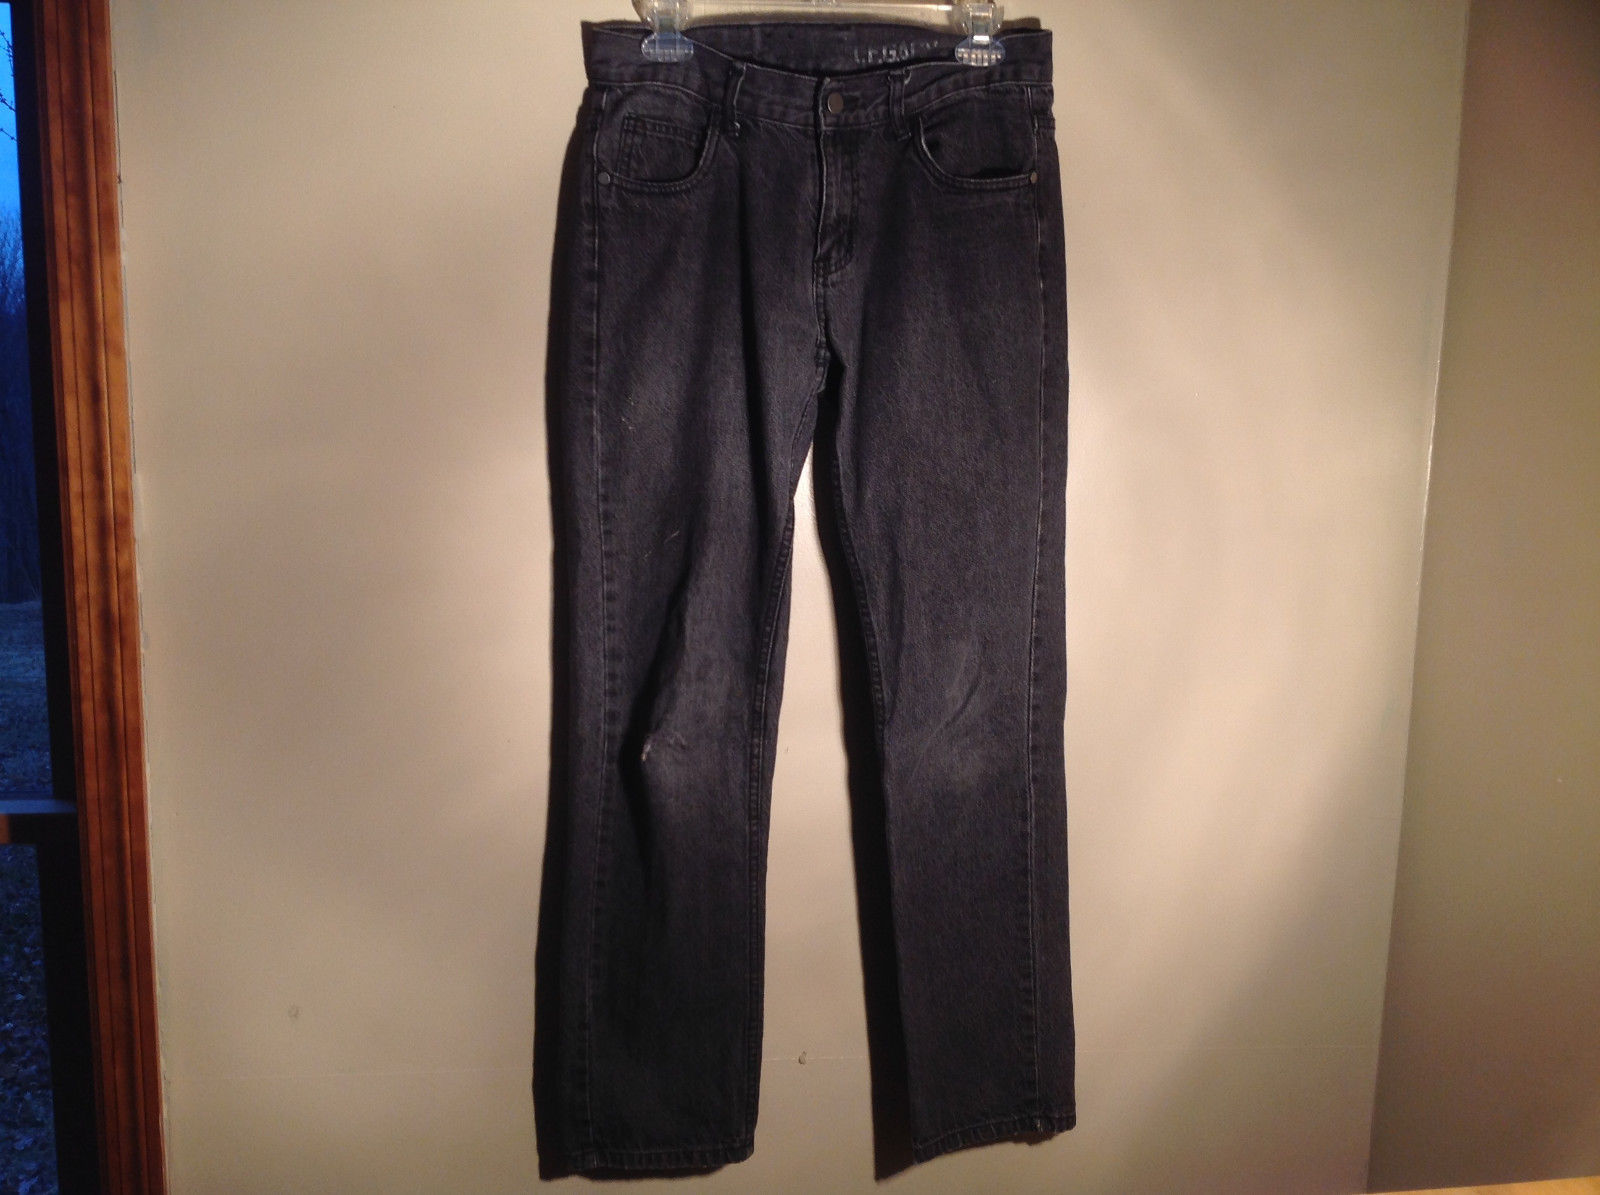 Core Legacy Black Denim Jeans 100 Percent Cotton Size 30